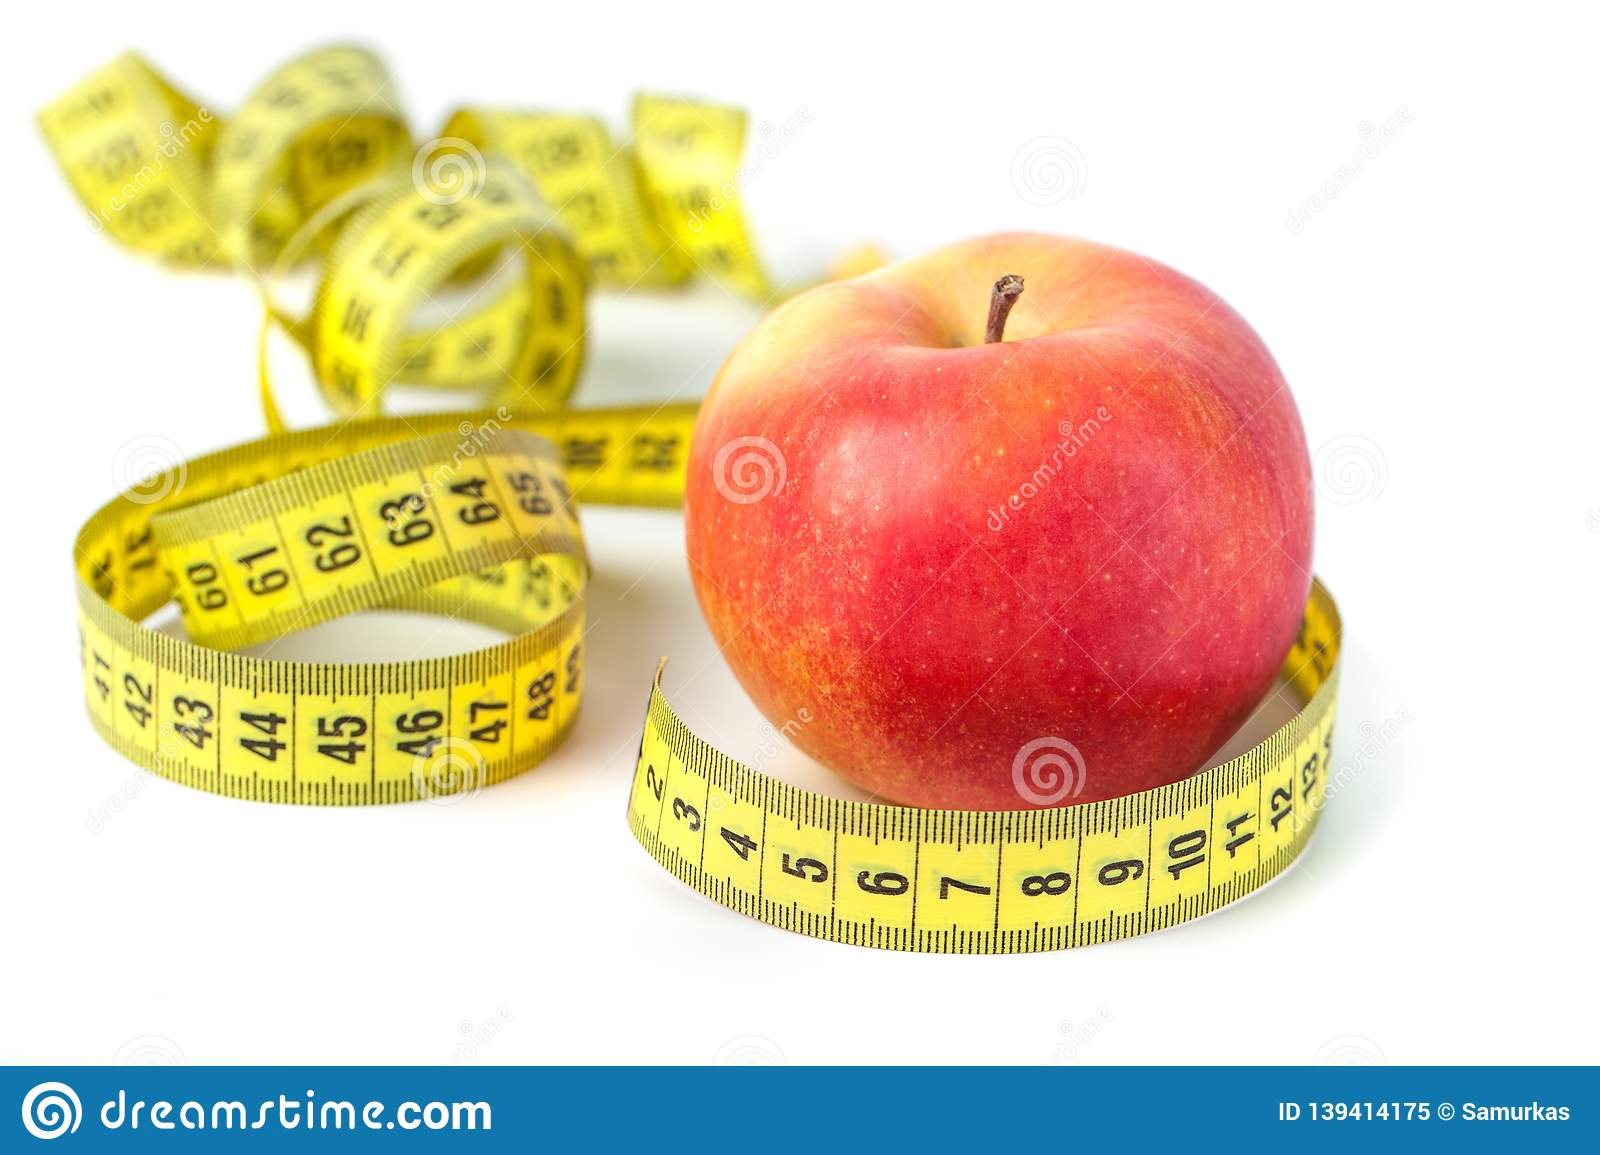 Red apple with measure tape on white background, healthy diet